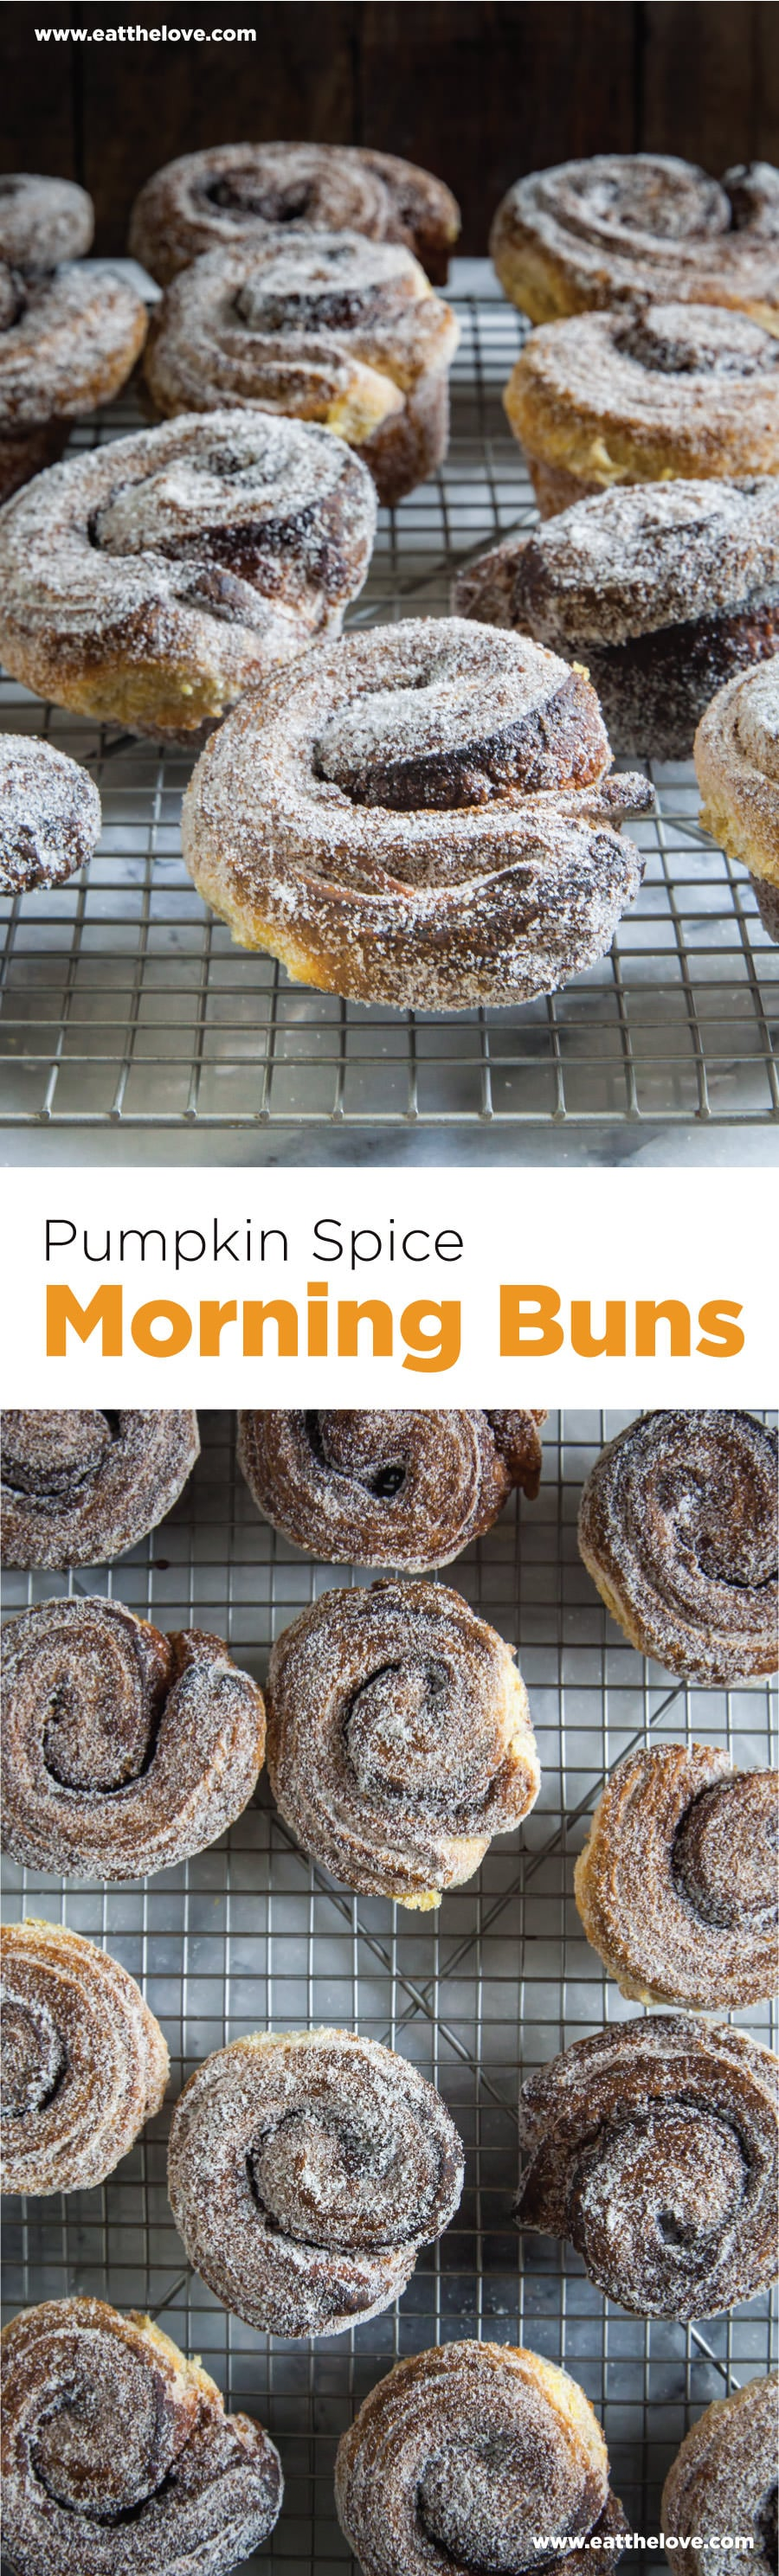 Pumpkin Spice Morning Buns with step-by-step photo instructions by Irvin Lin of Eat the Love.